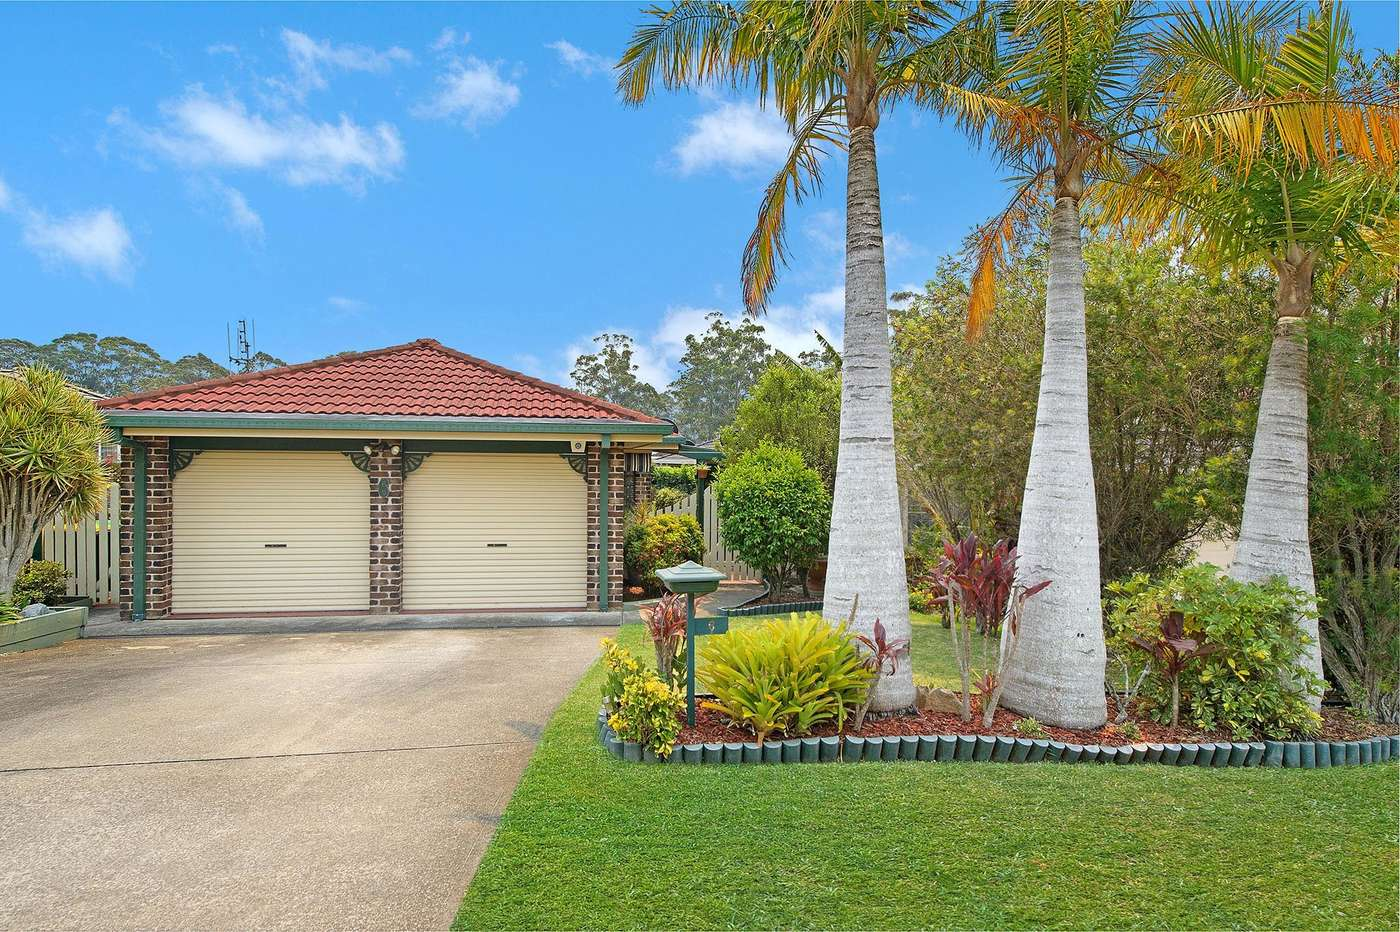 Main view of Homely house listing, 6 The Point Dr, Port Macquarie, NSW 2444